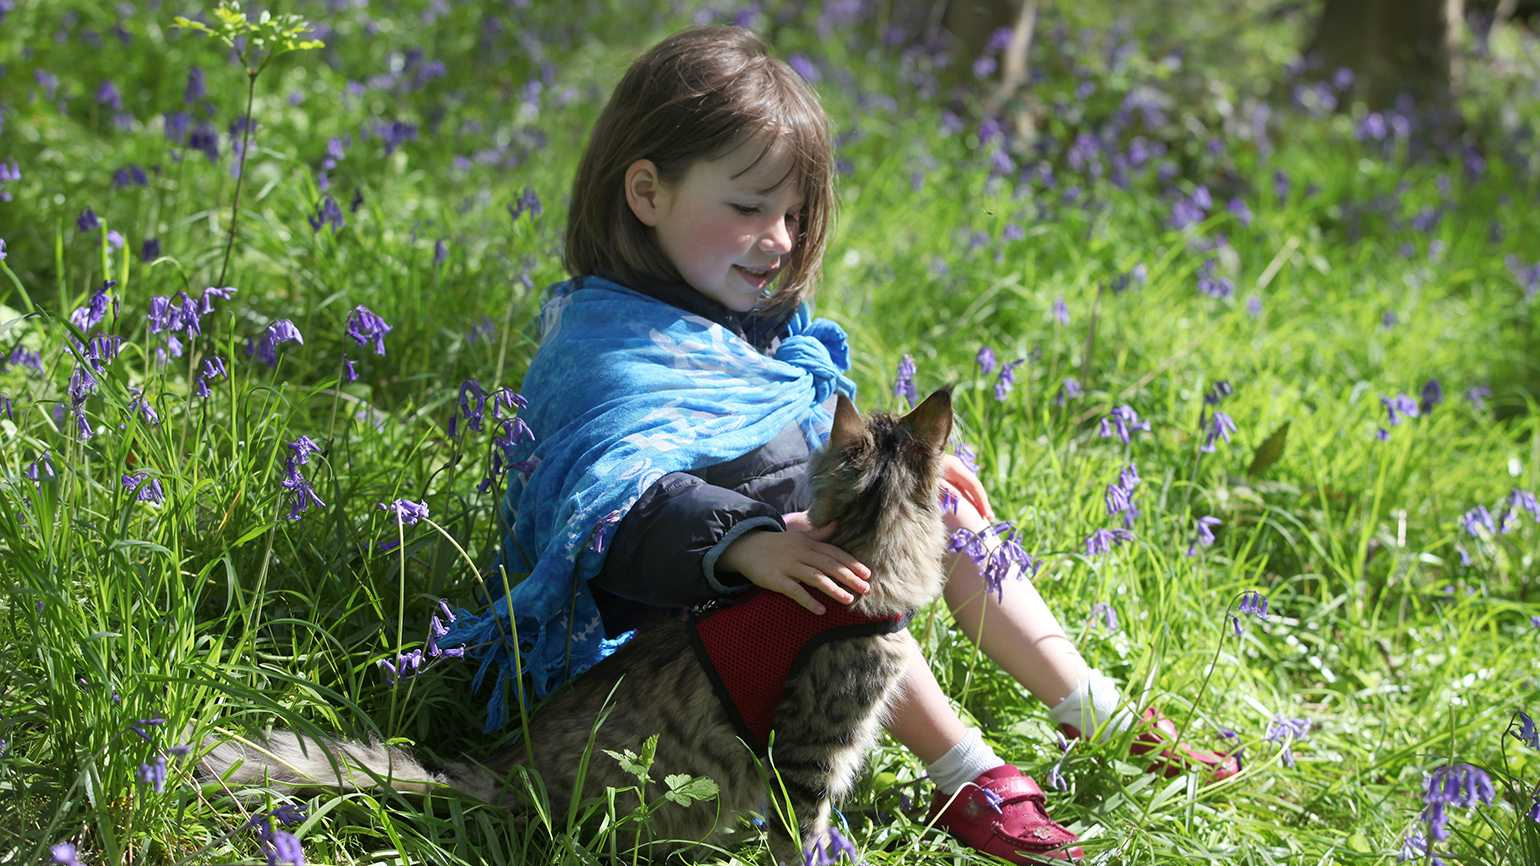 Iris and her pet cat, Thula